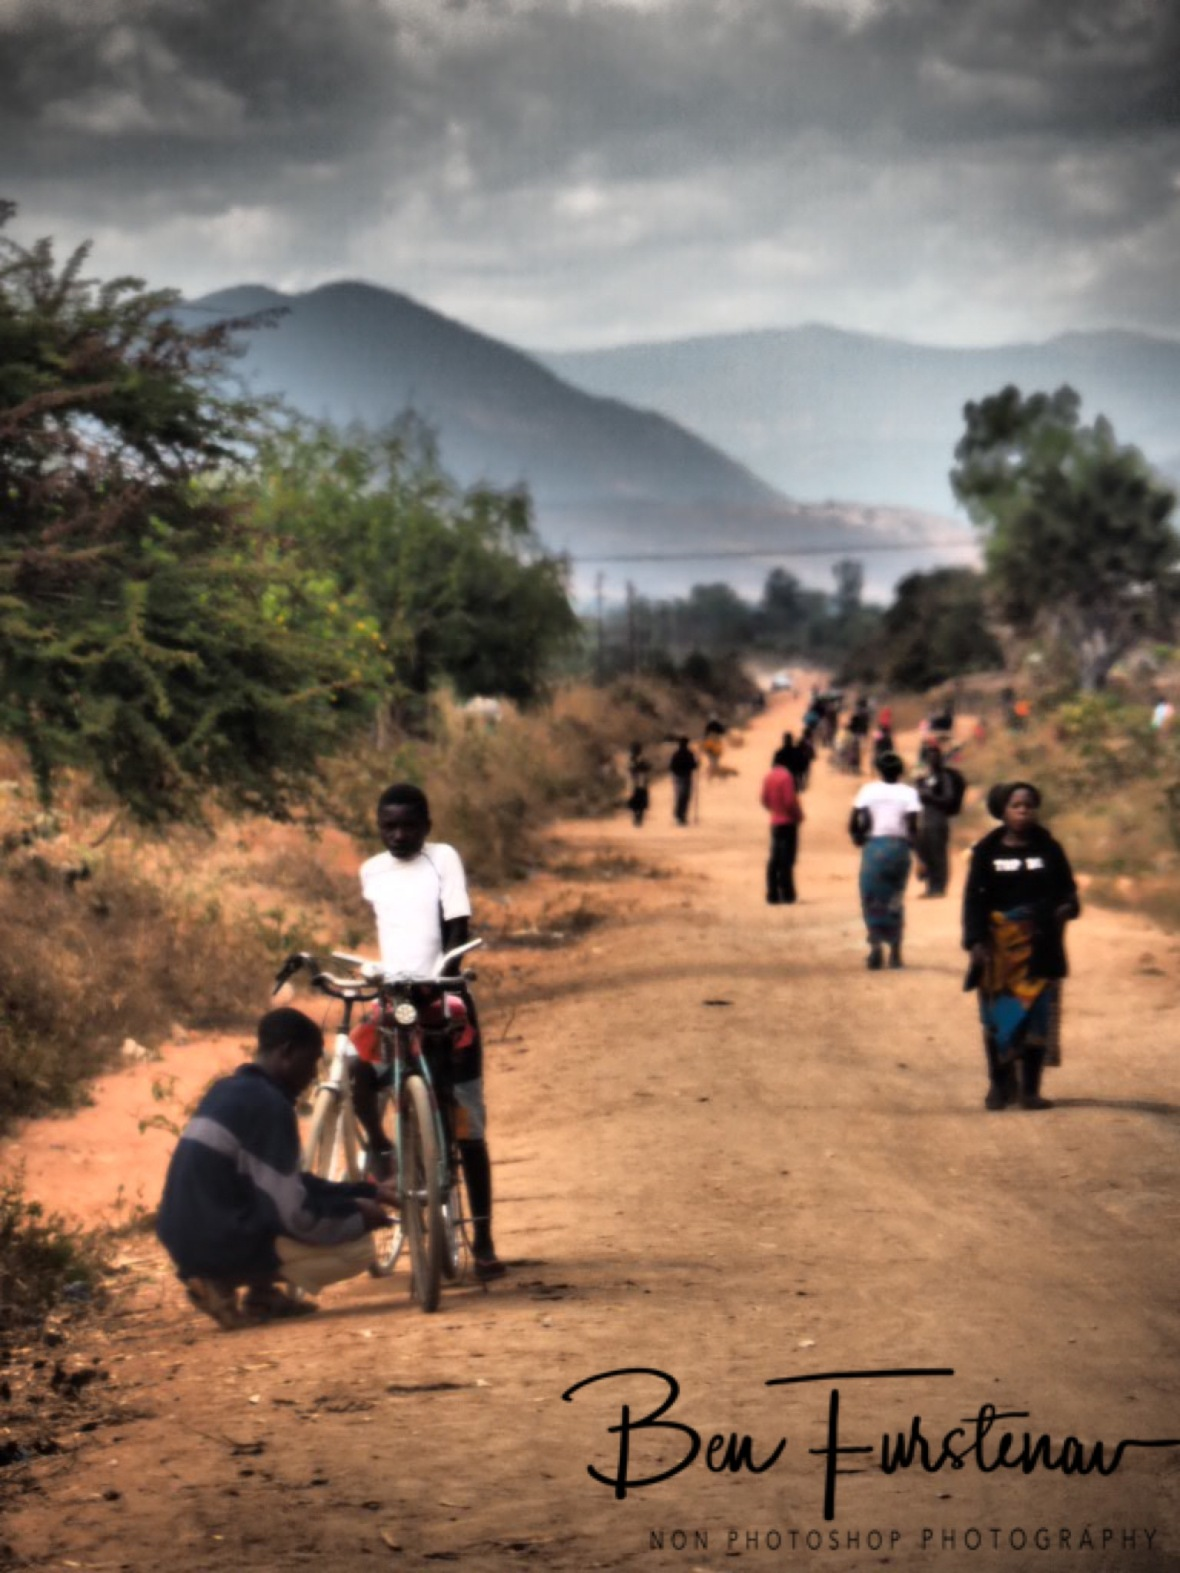 Quick fix on side off the road, Northern Region, Malawi